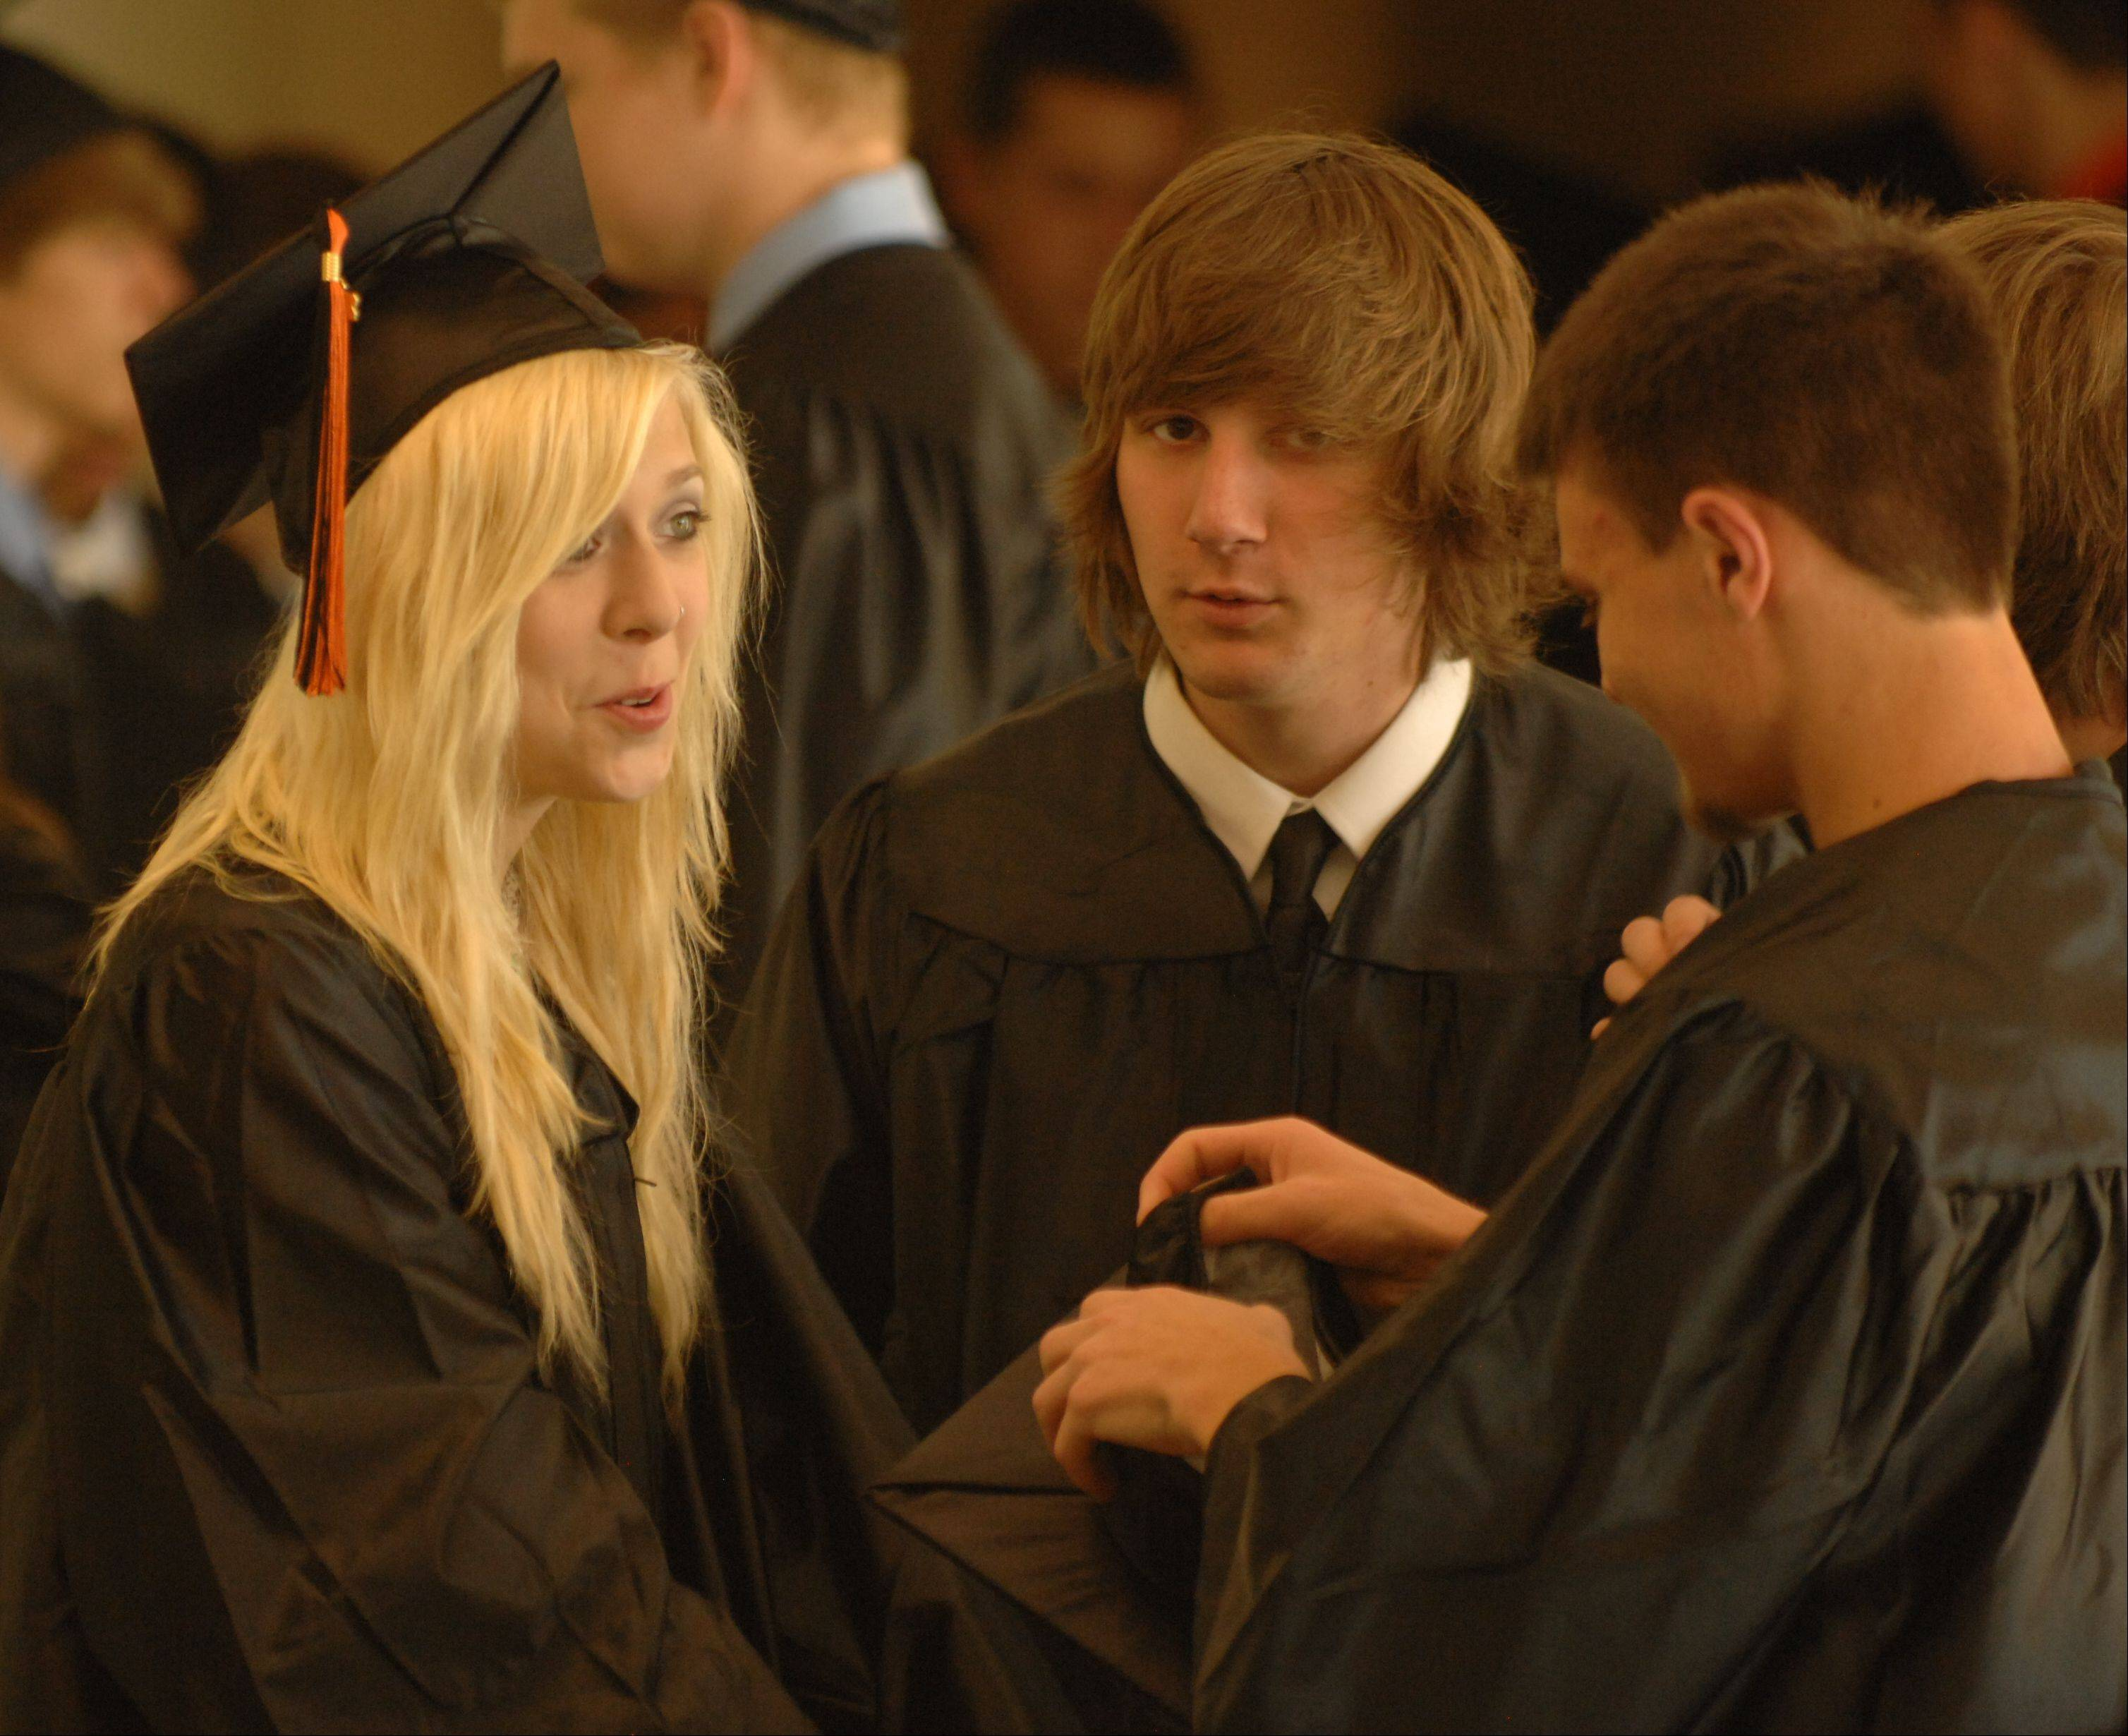 Wheaton Warrenville South High School held its graduation ceremony Saturday at The College of DuPage in Glen Ellyn.